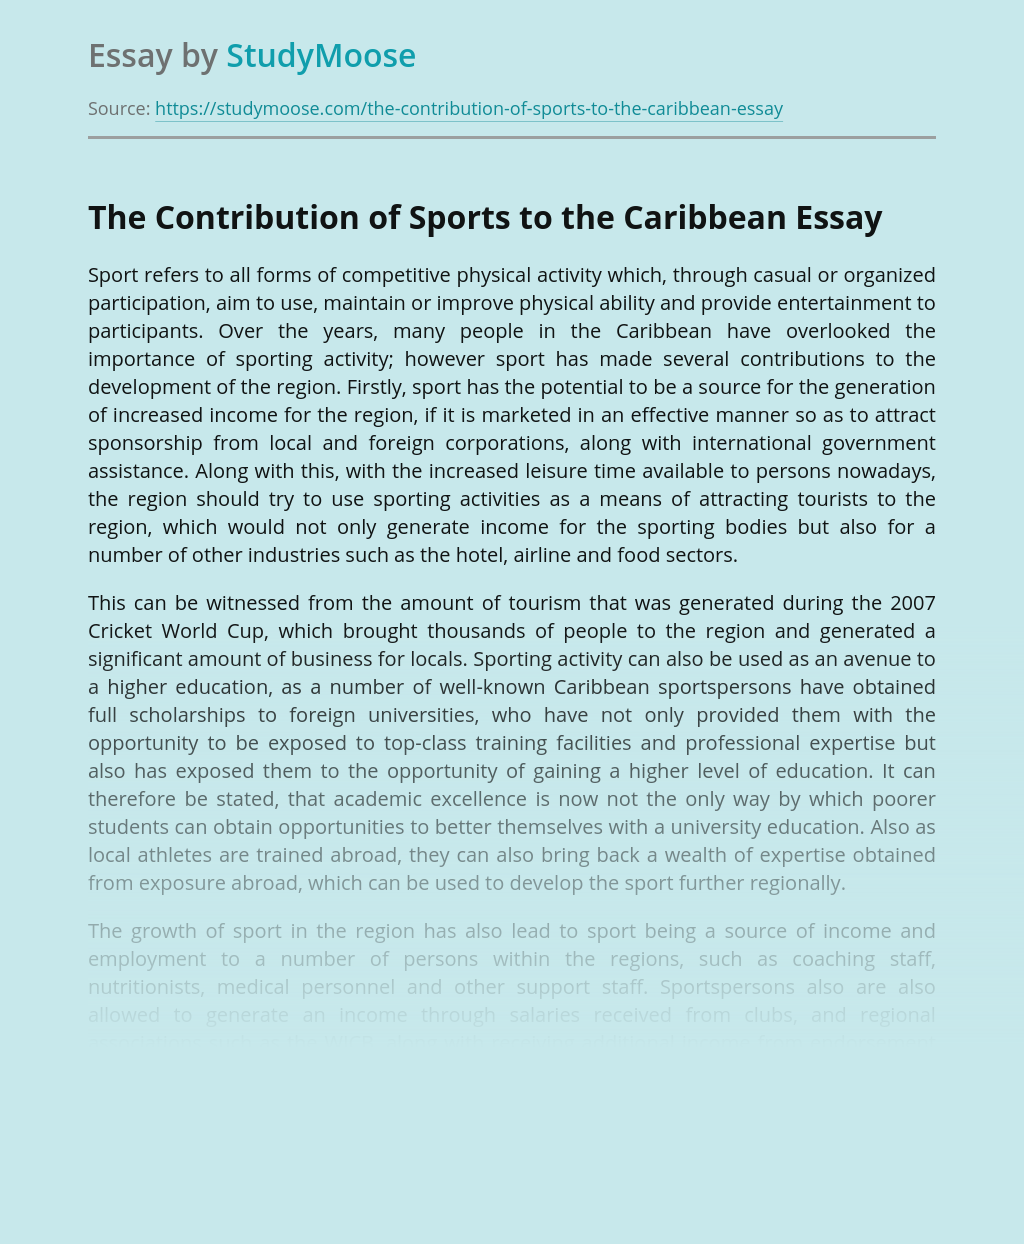 The Contribution of Sports to the Caribbean